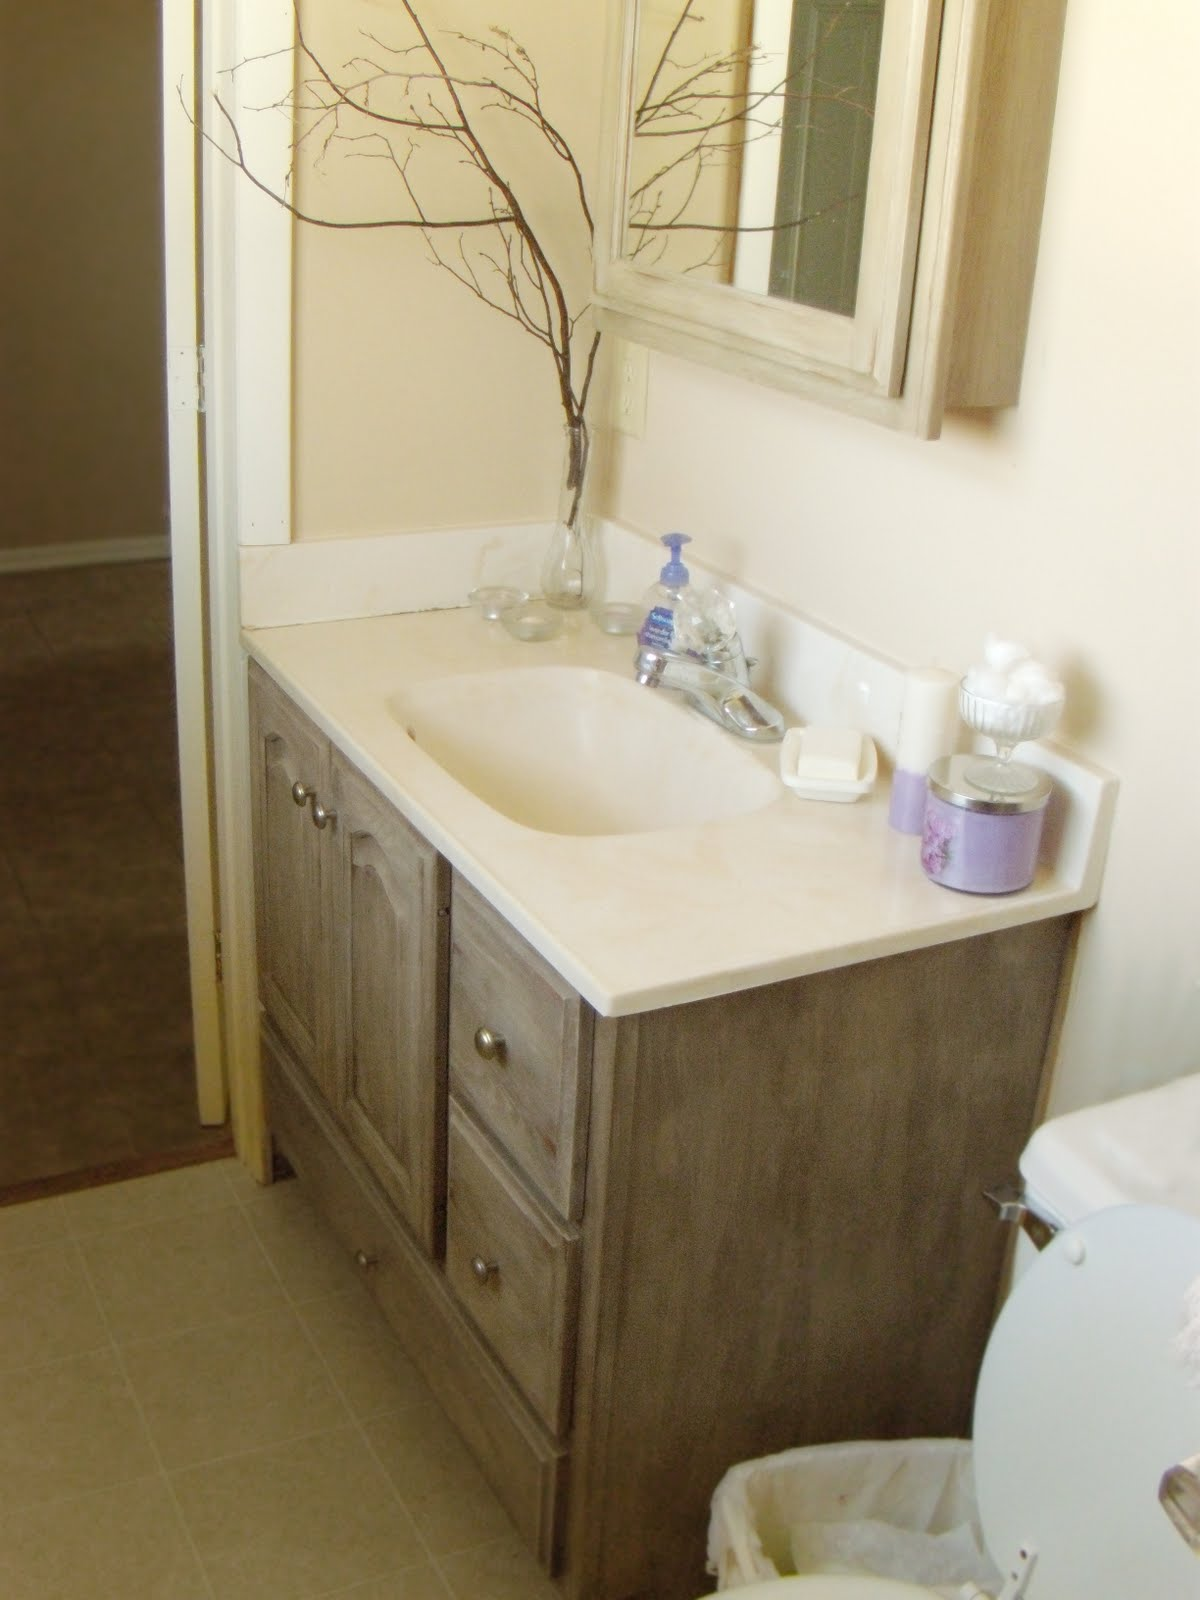 Redo Bathroom Cabinets Enchanting Down On Sanford Bathroom Vanity Redo Design Decoration